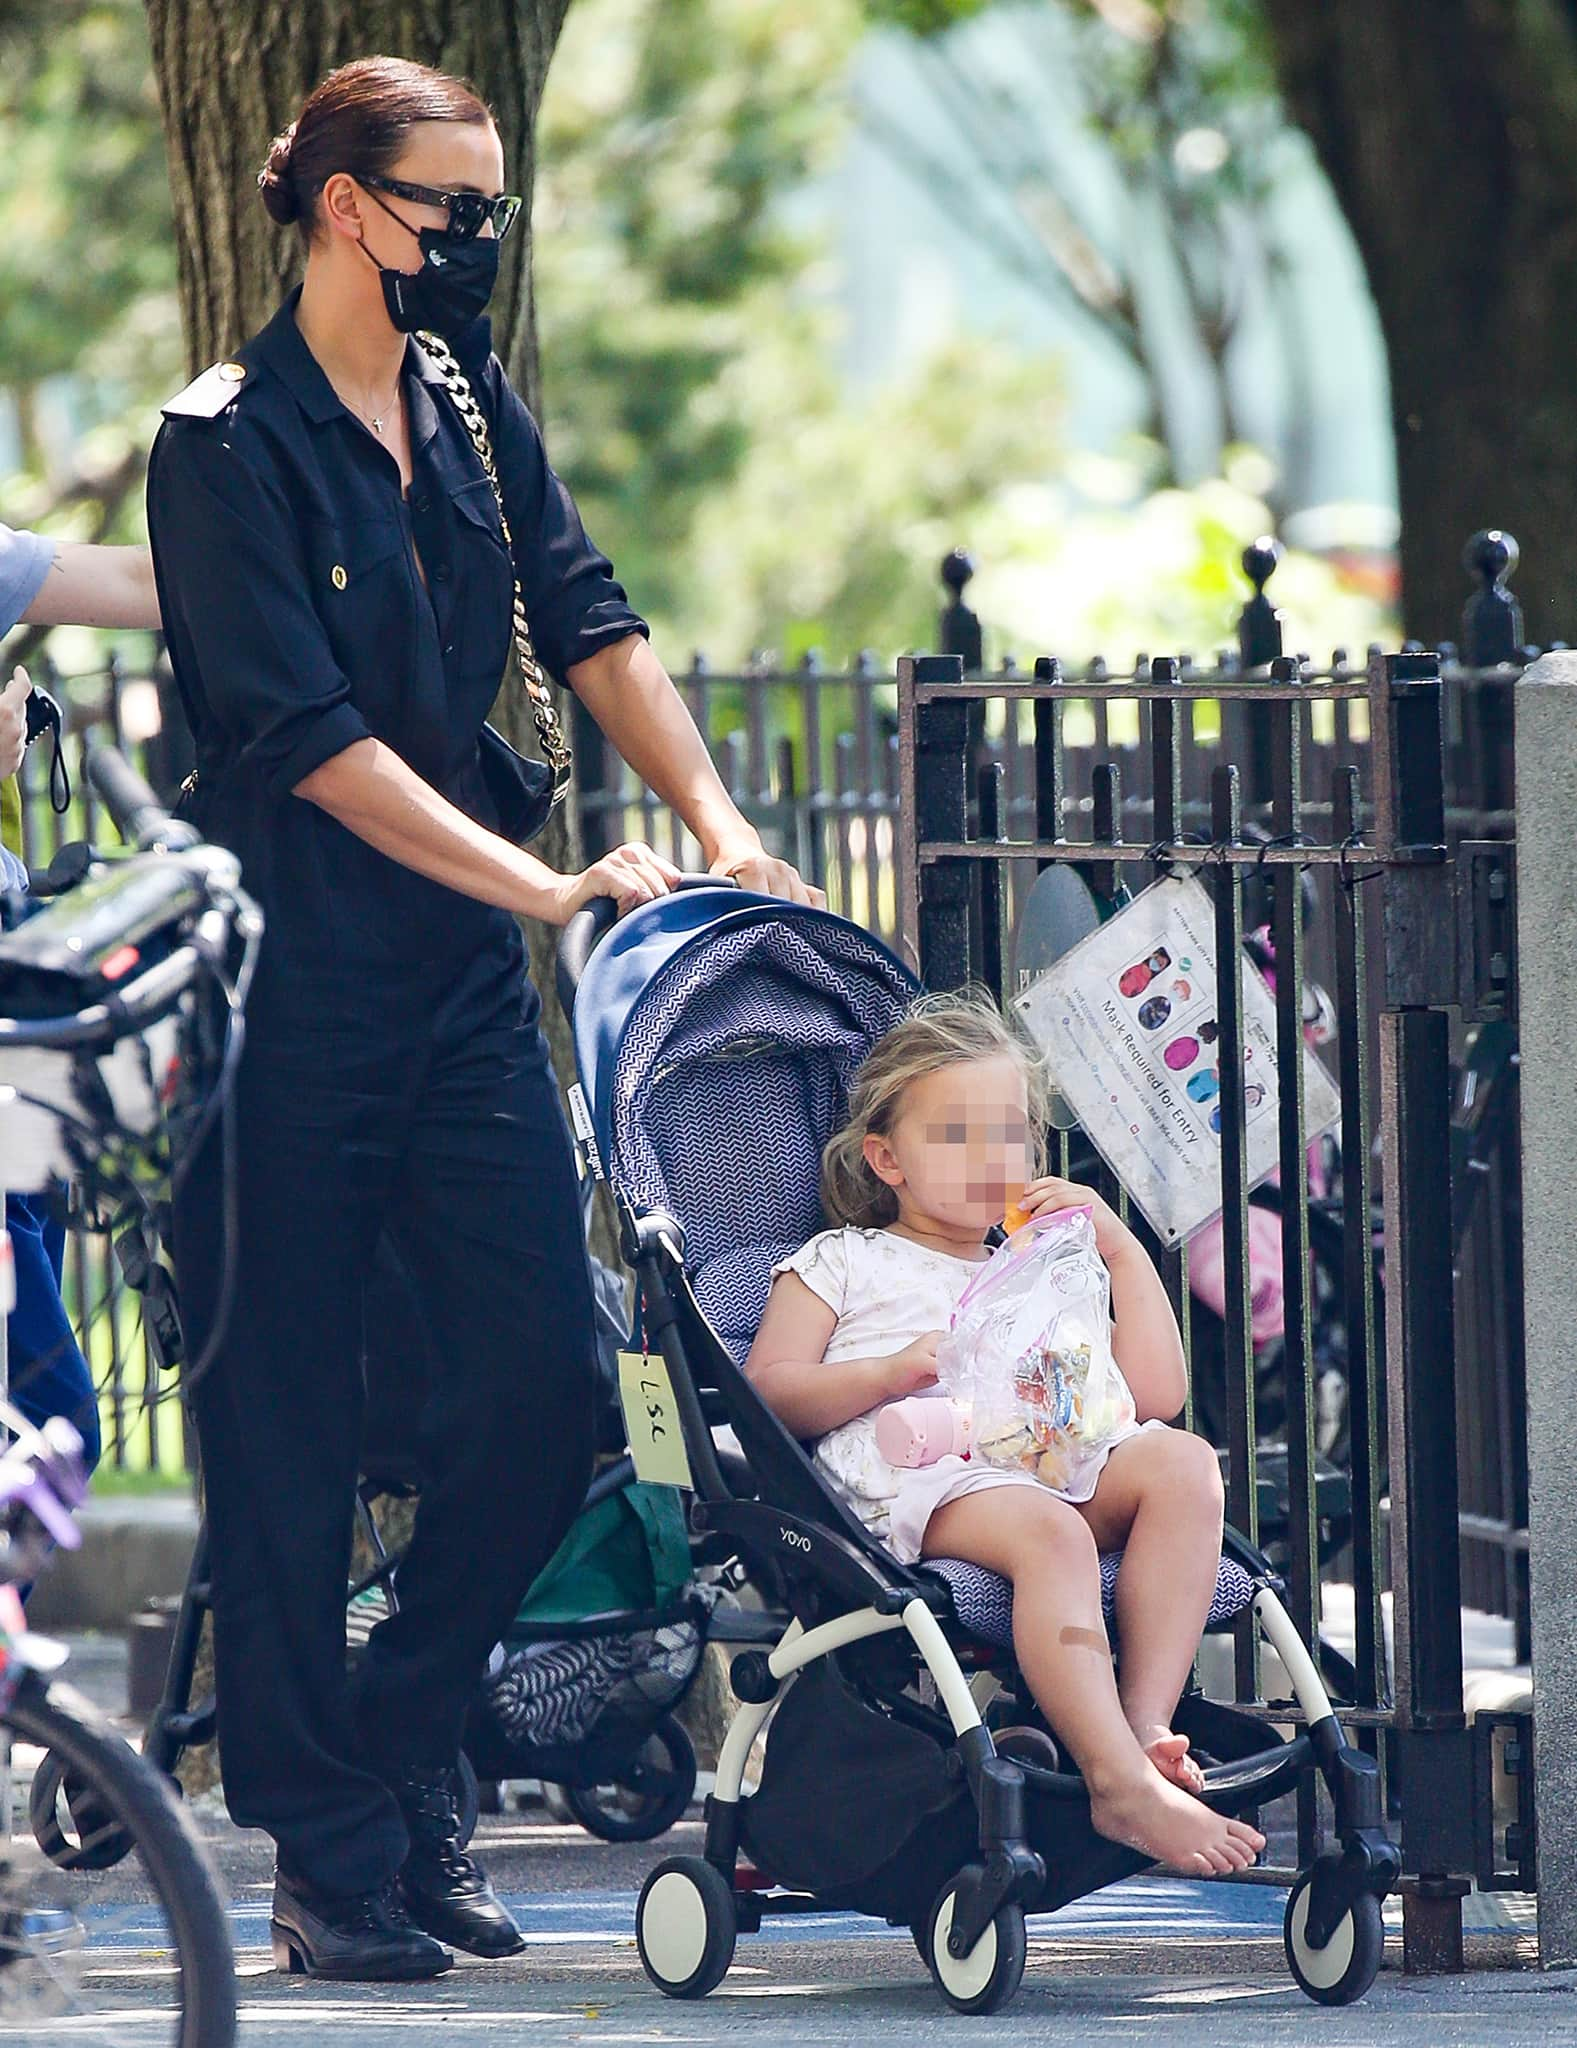 Irina Shayk takes daughter Lea de Seine to the playground after a French getaway with Kanye West